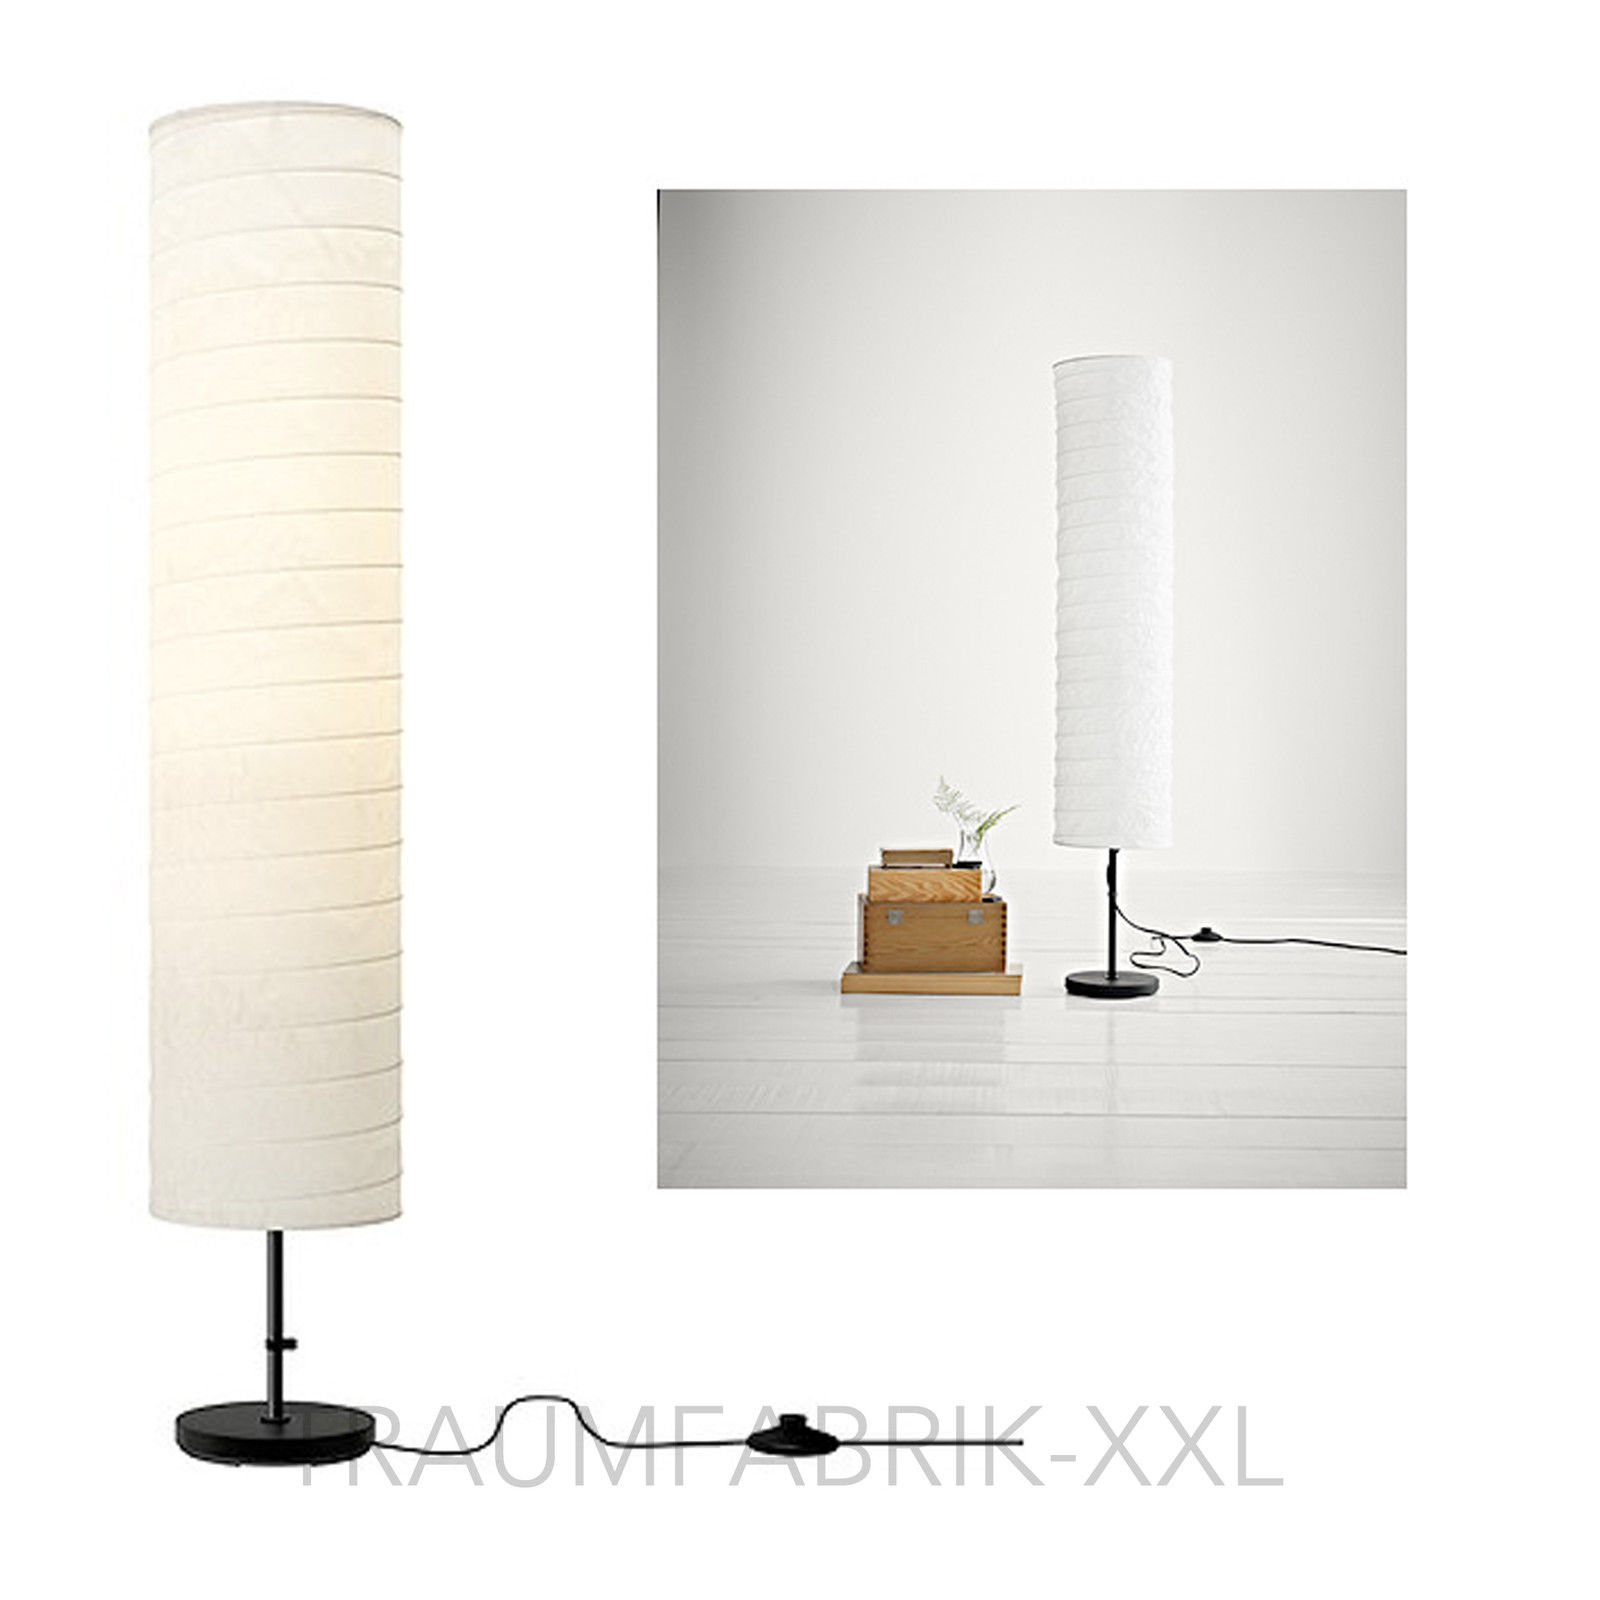 lounge standleuchte 117 cm lampe leuchte weiss stehlampe. Black Bedroom Furniture Sets. Home Design Ideas